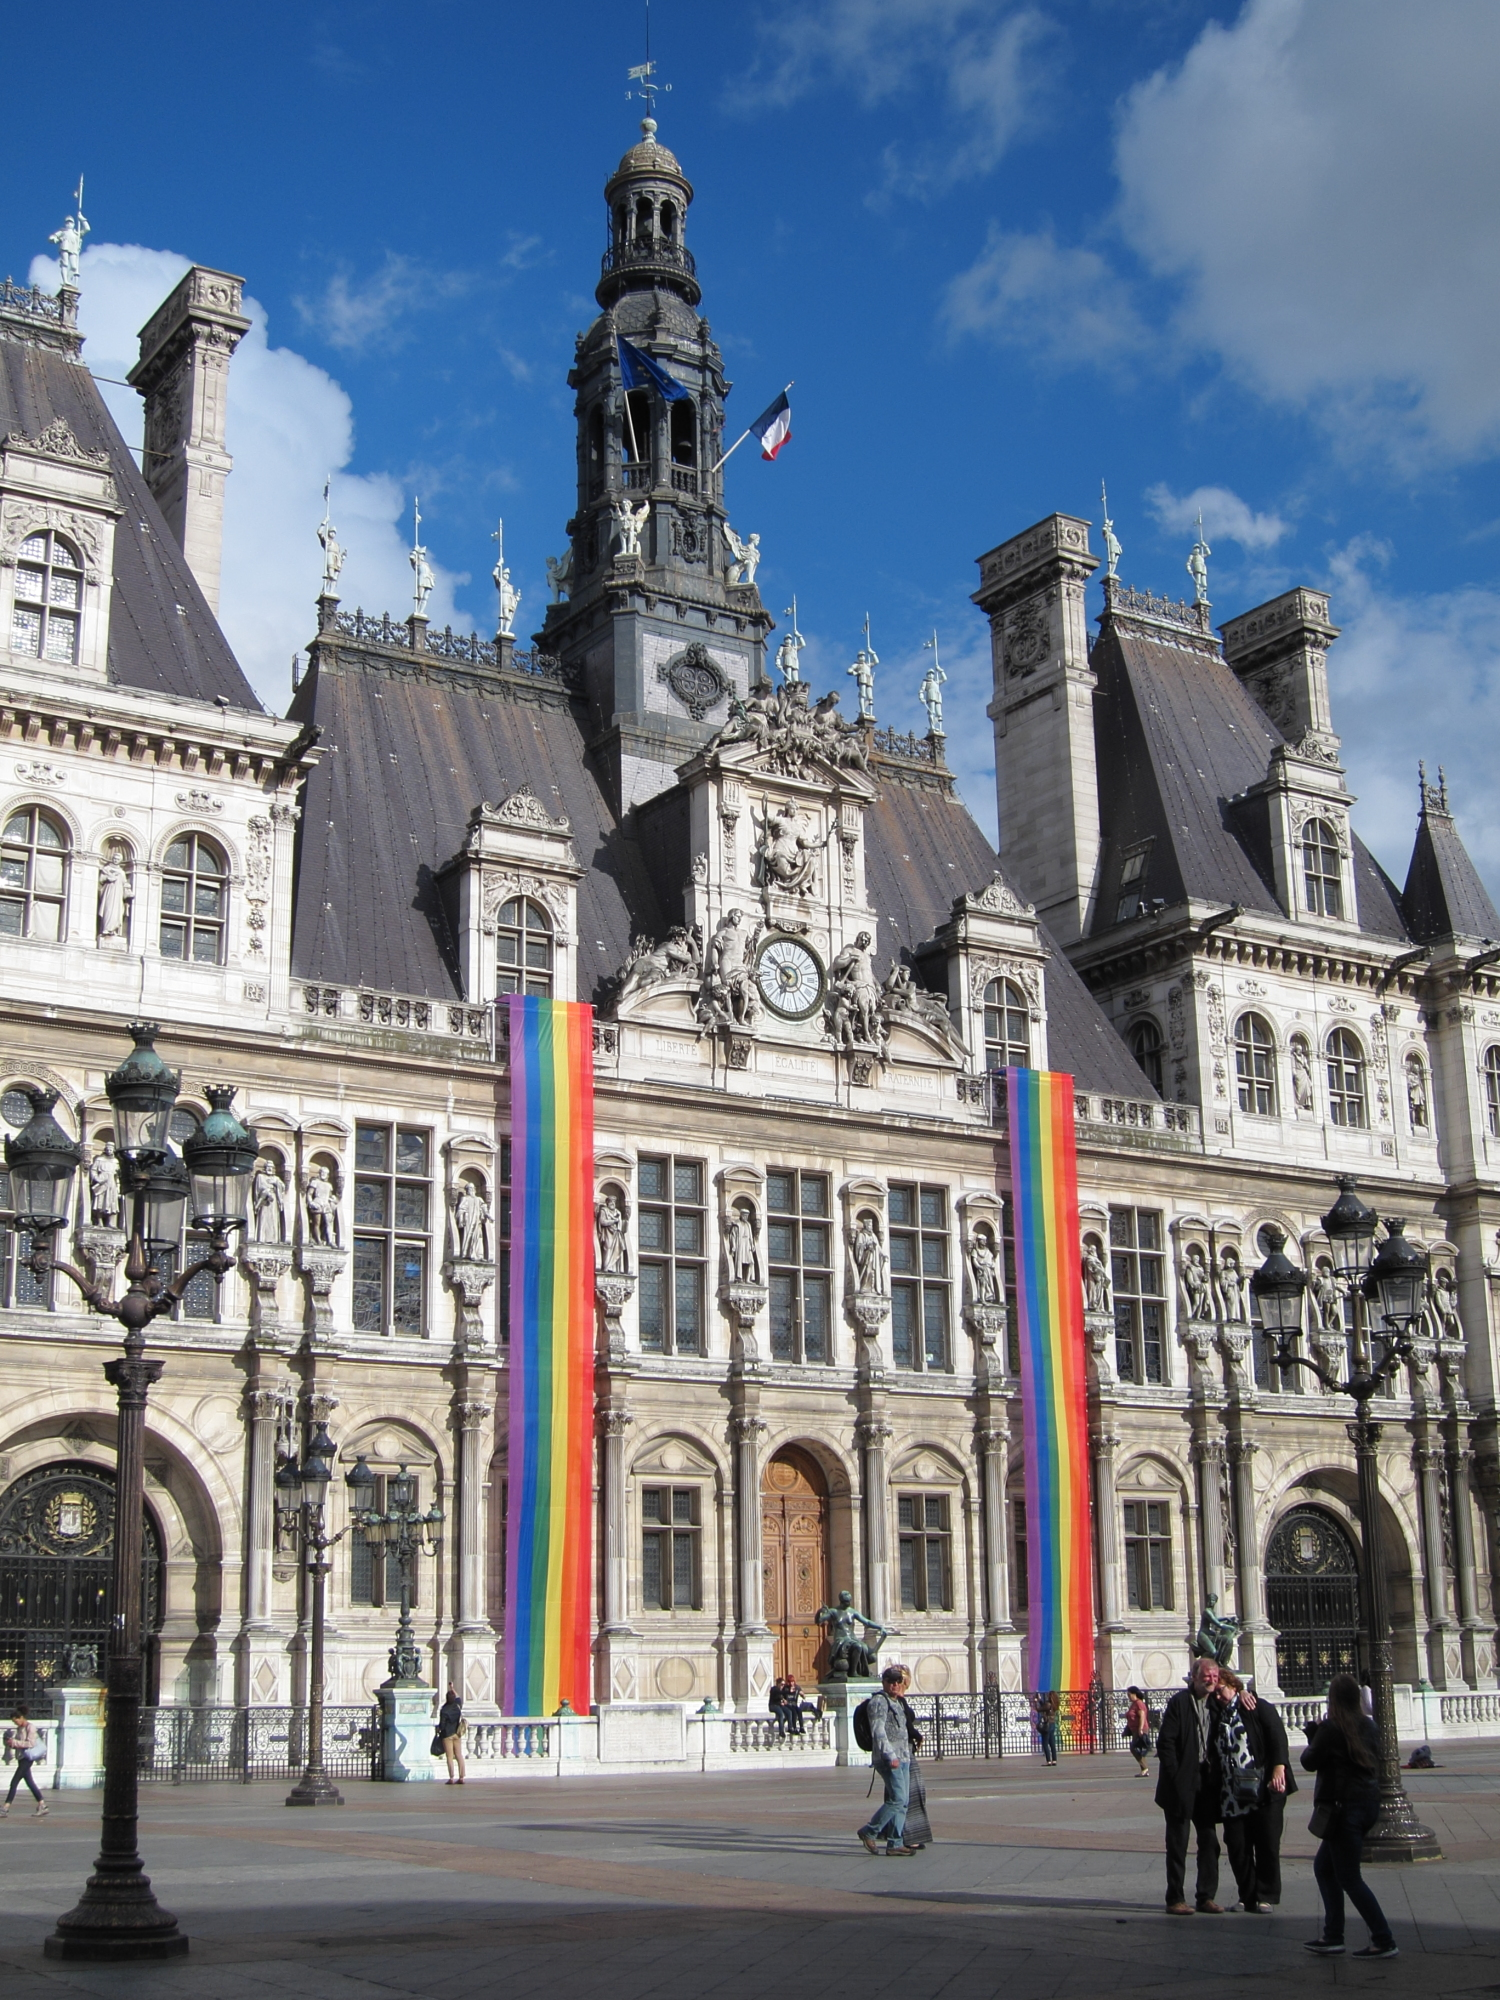 Rainbow banners on the Paris city hall (Hôtel de Ville) for 2014 Gay Pride.